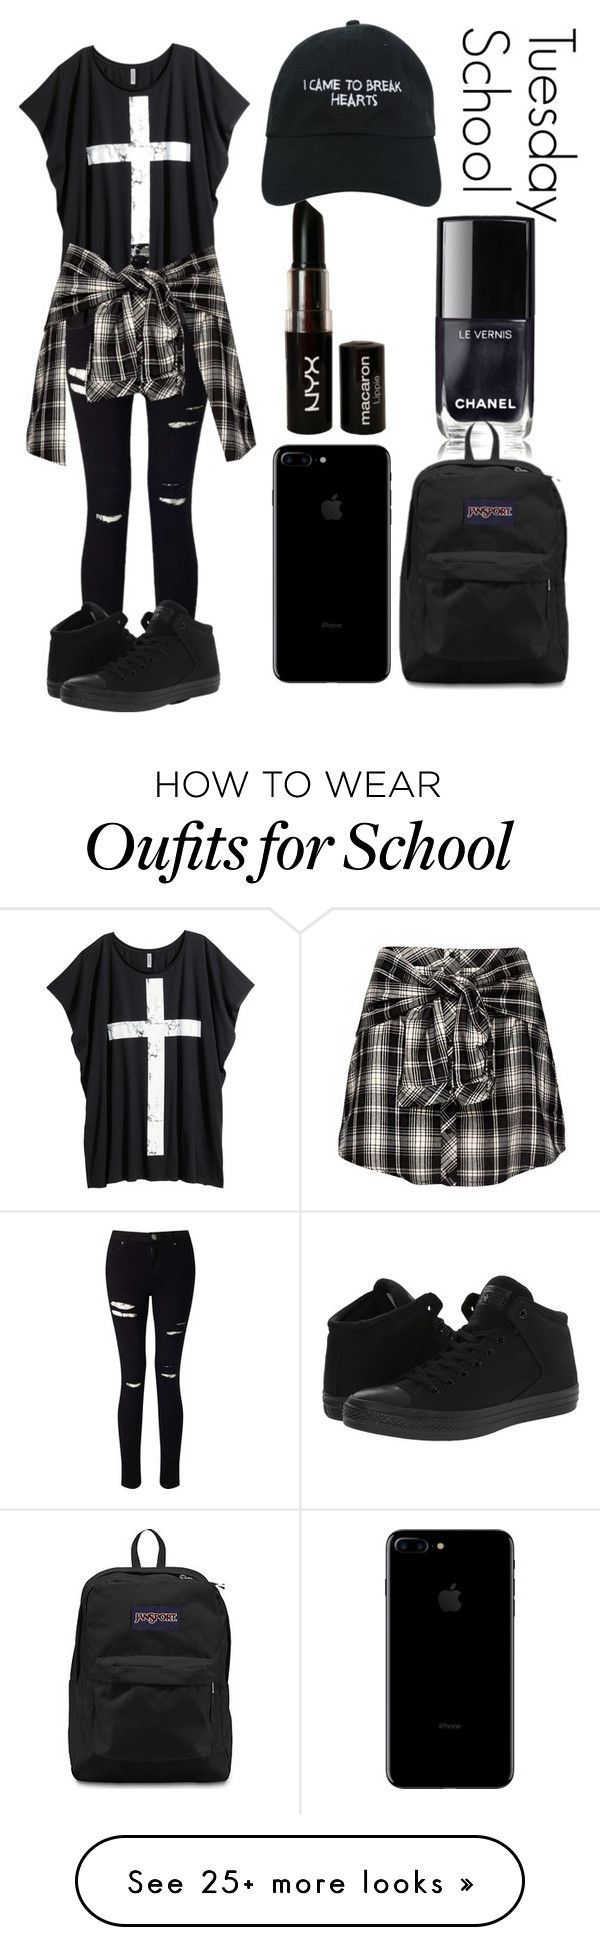 Tuesday School by kellyaguilera on Polyvore featuring Miss Selfridge, H&M, NYX, Converse, JanSport, Nasaseasons, school, black, teen and emo #outfitswithhats